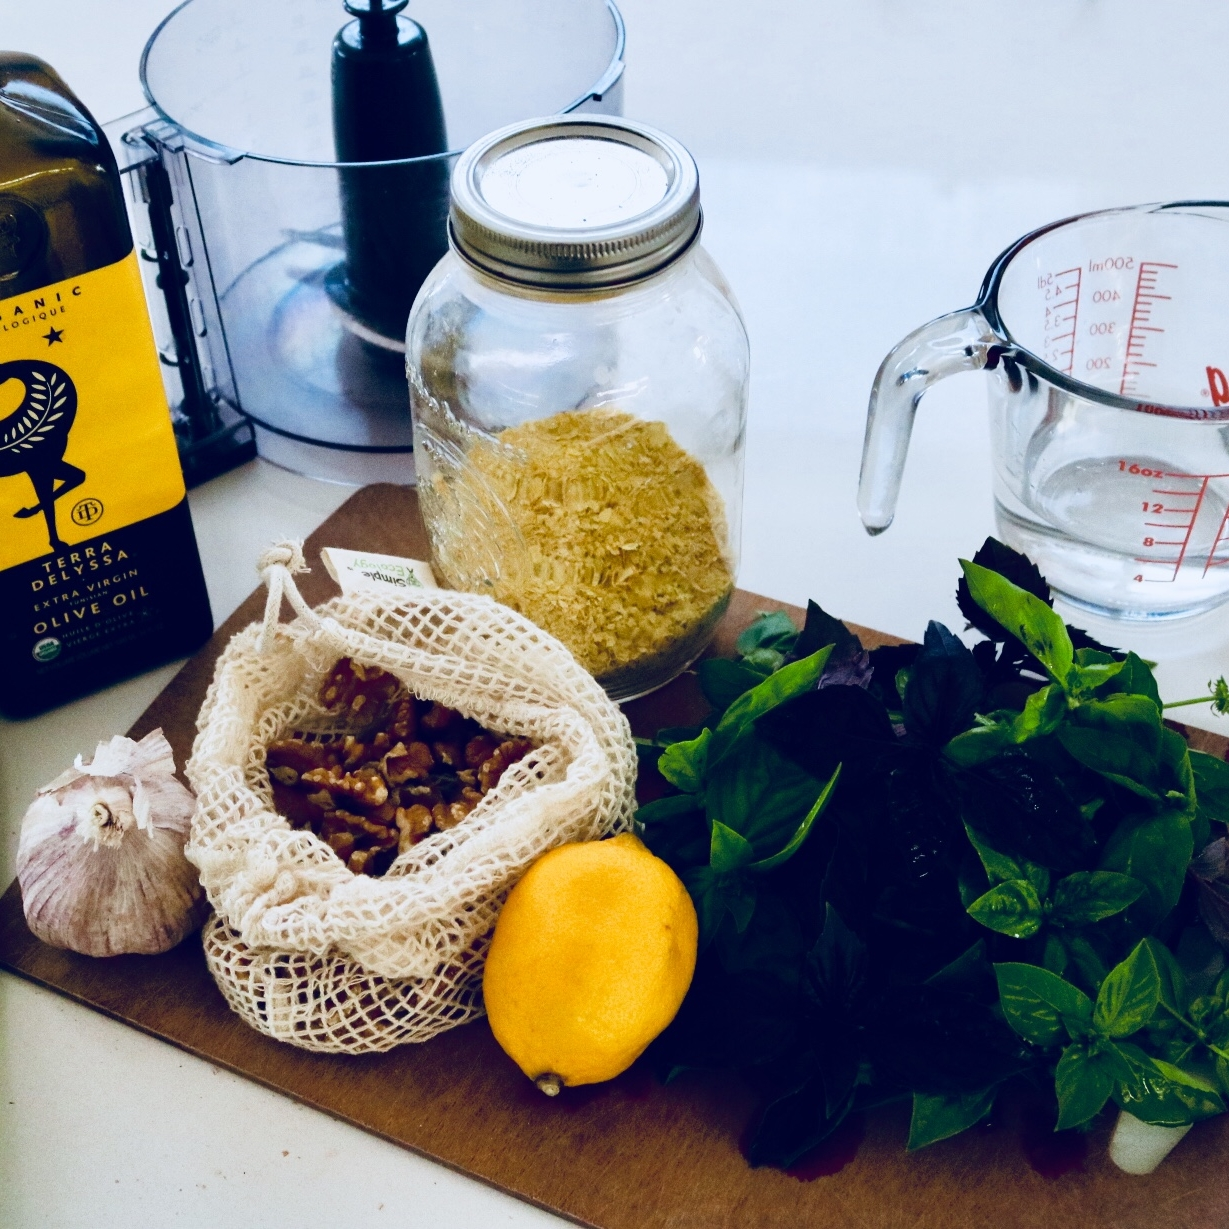 Pesto ingredients.jpg